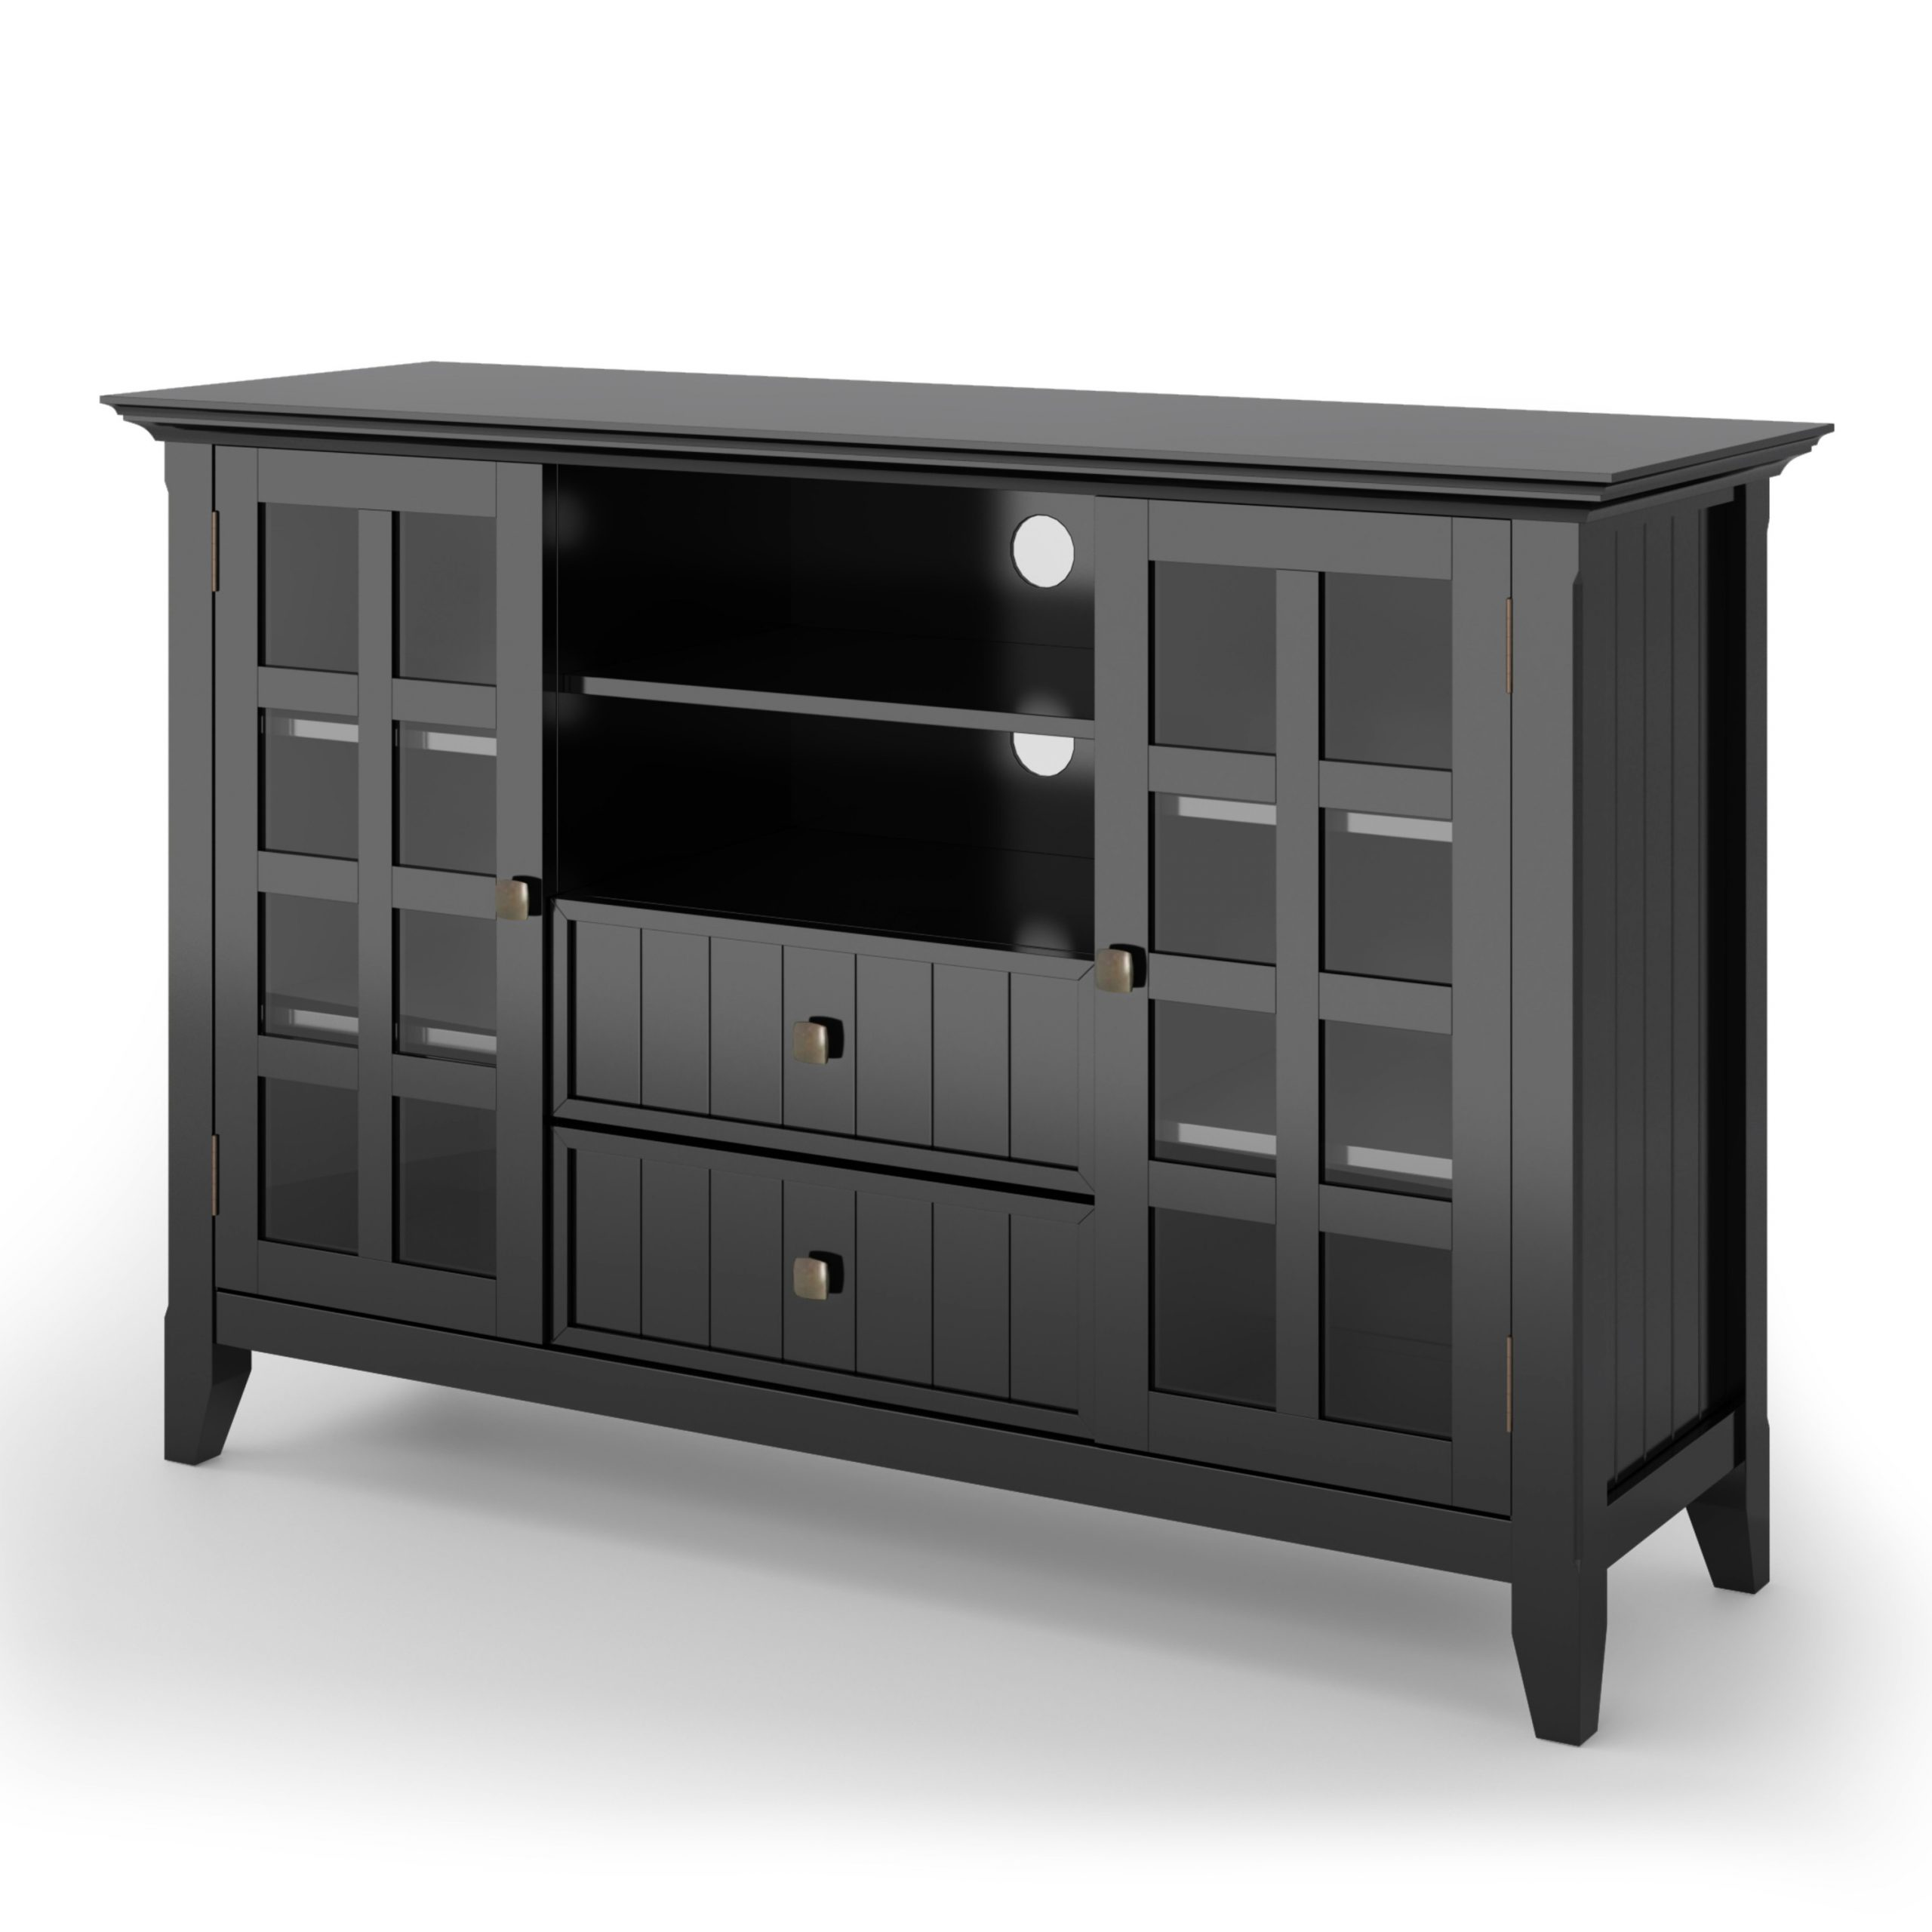 Bromley Black Wide Tv Stands For Latest Brooklyn + Max Brunswick Solid Wood 53 Inch Wide Rustic Tv (View 10 of 10)